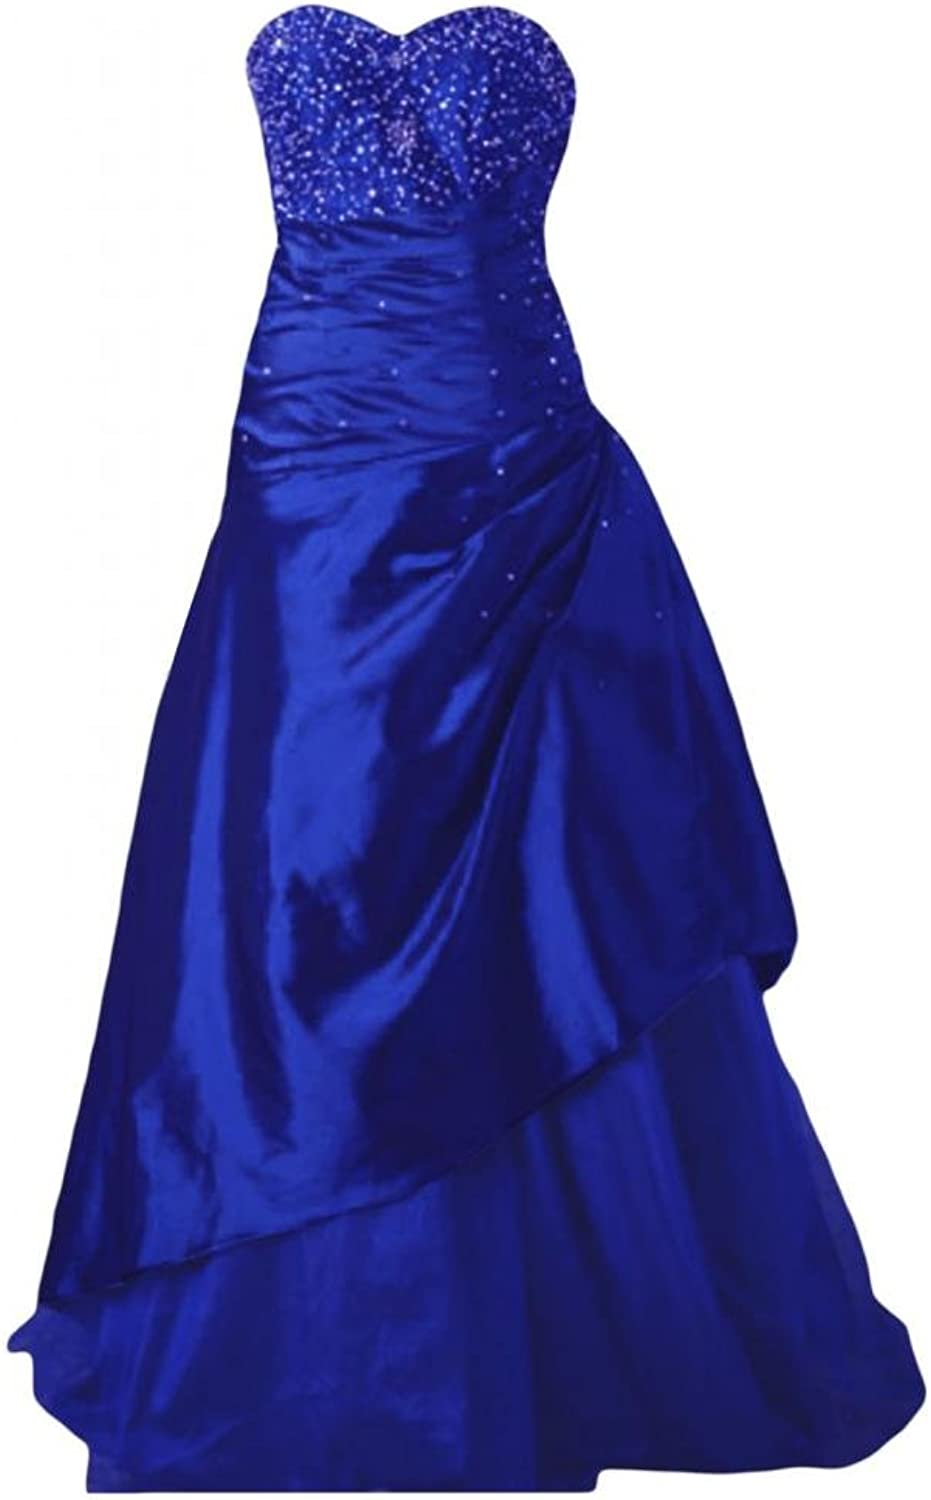 Angel Bride ALine Evening Taffeta Tulle Party Dresses Prom Gowns